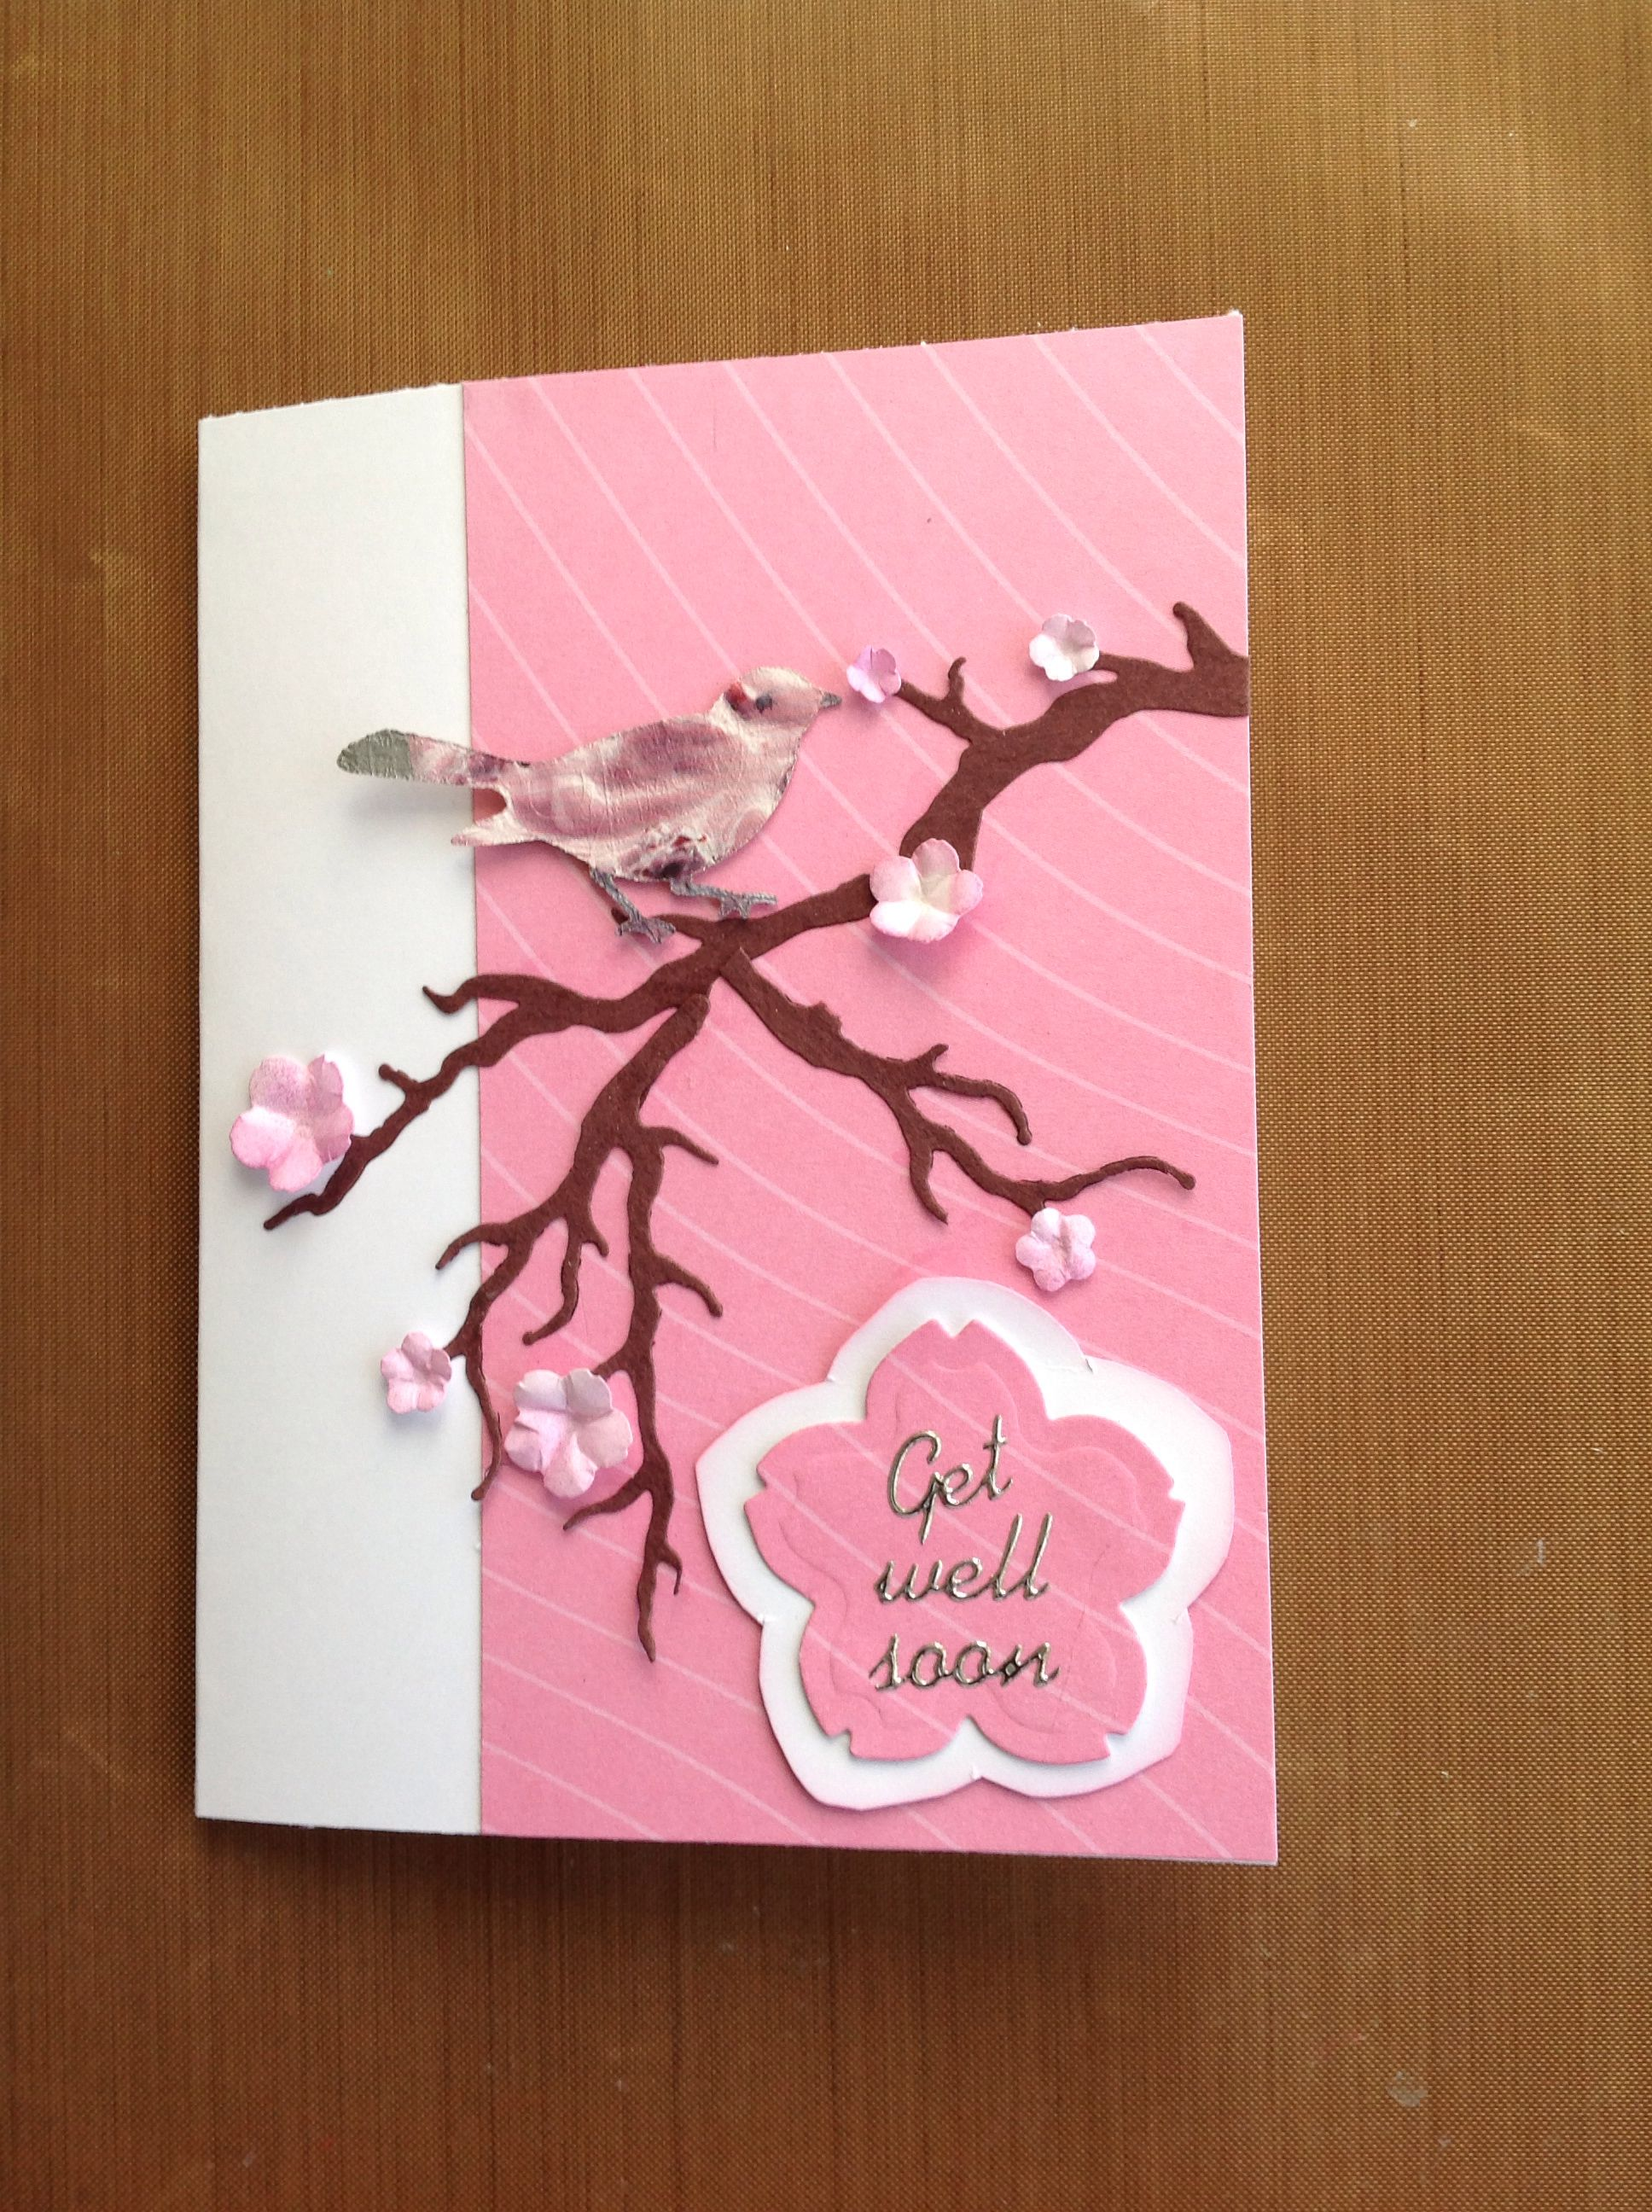 bird in tree get well soon  birthday cards cards get well